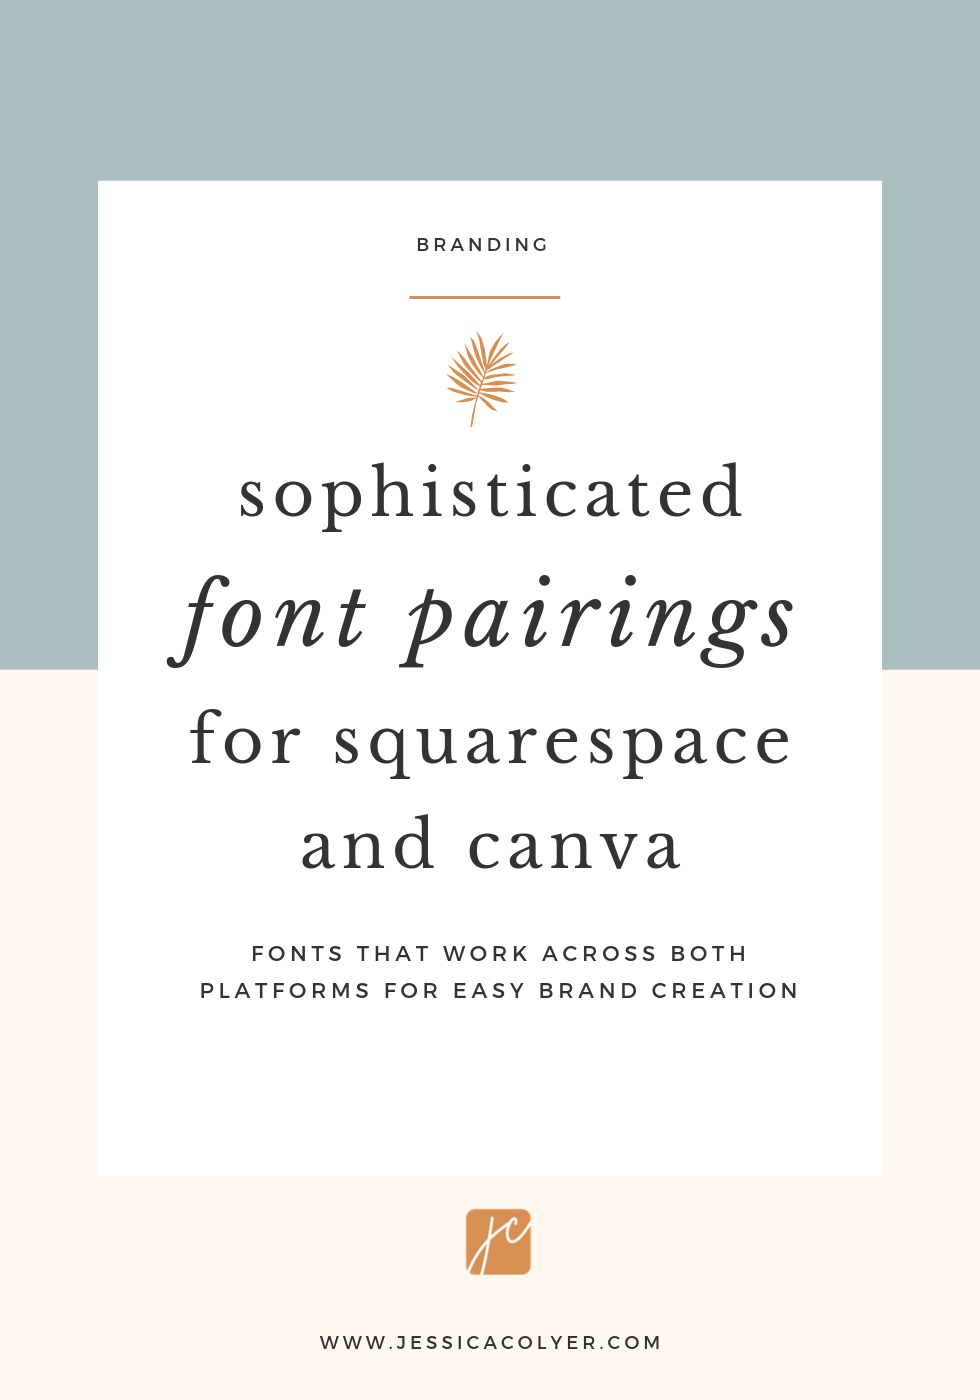 Font Pairings for Squarespace and Canva